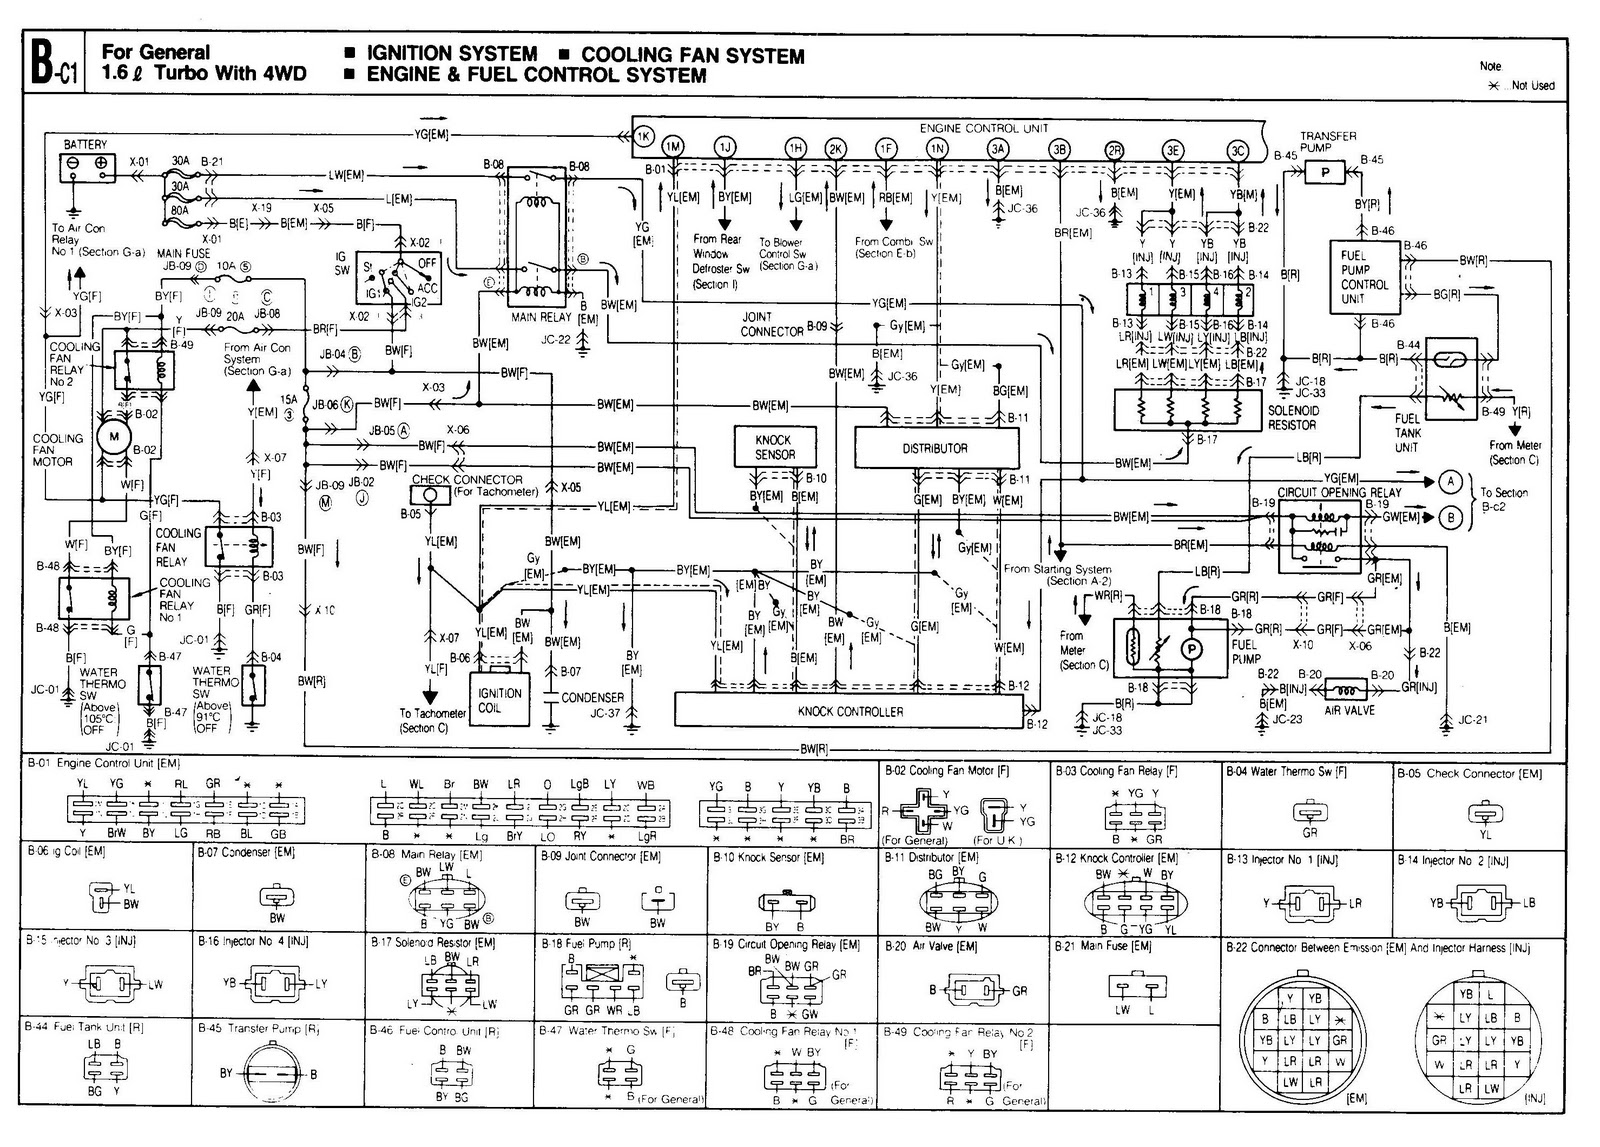 Wiring Diagram 99 honda cr v wiring diagram readingrat net Mazda 6 Stereo Diagram at webbmarketing.co